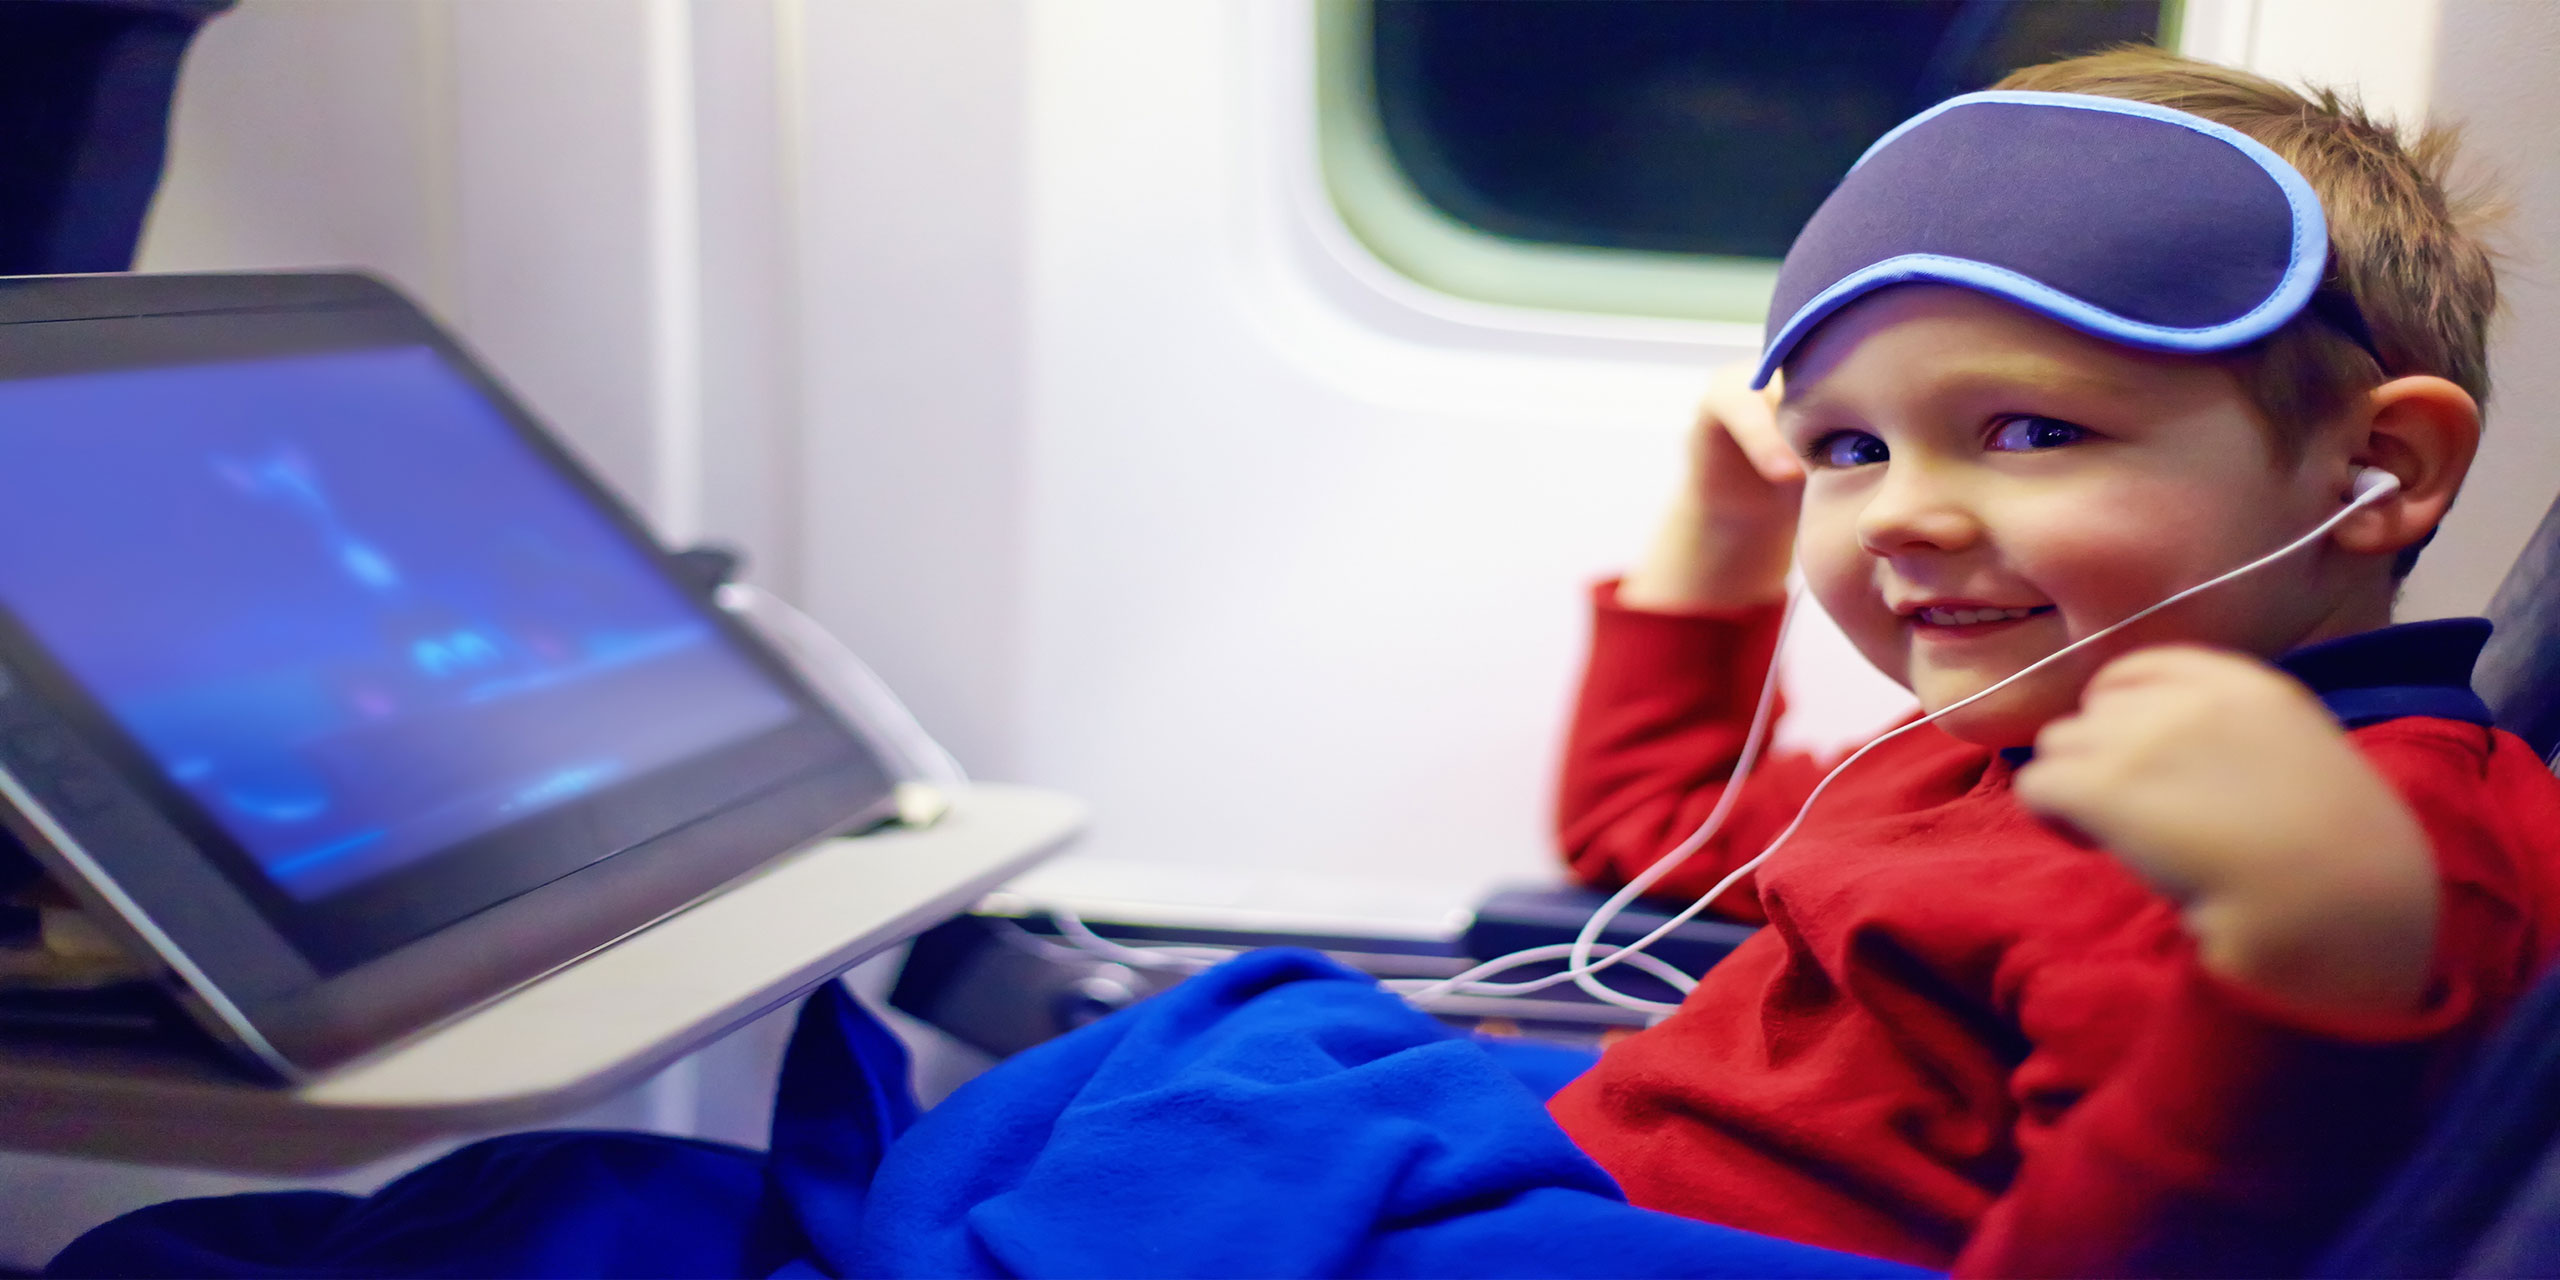 Kid On Plane; Courtesy of Olesia Bilkei/Shutterstock.com